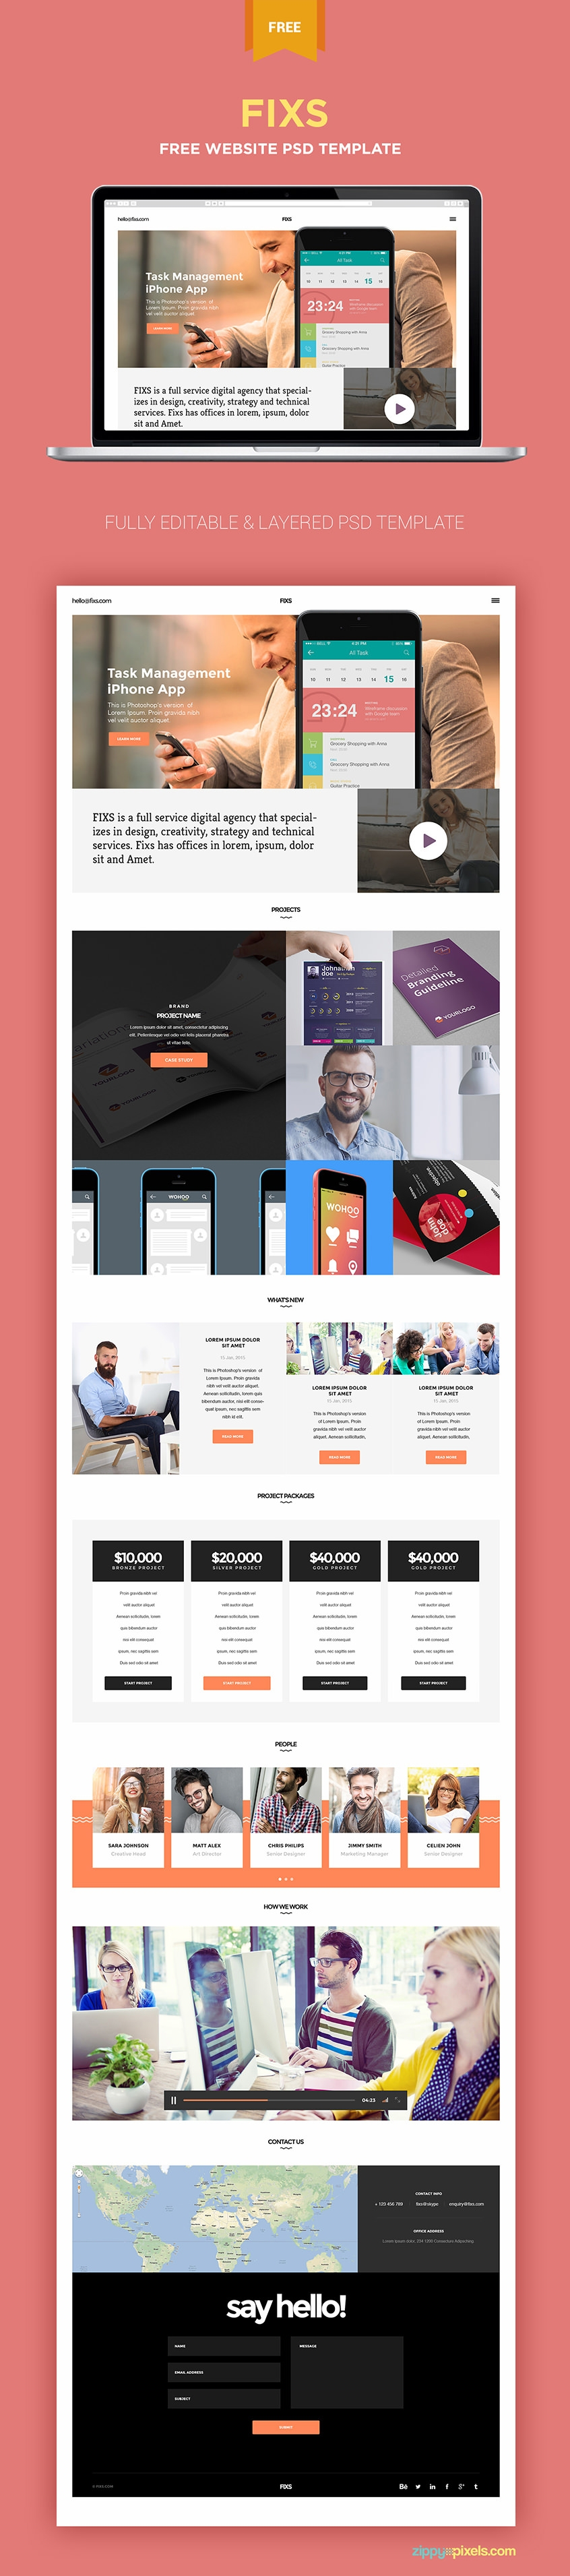 Free Elegant Single Page Website Template in PSD Format